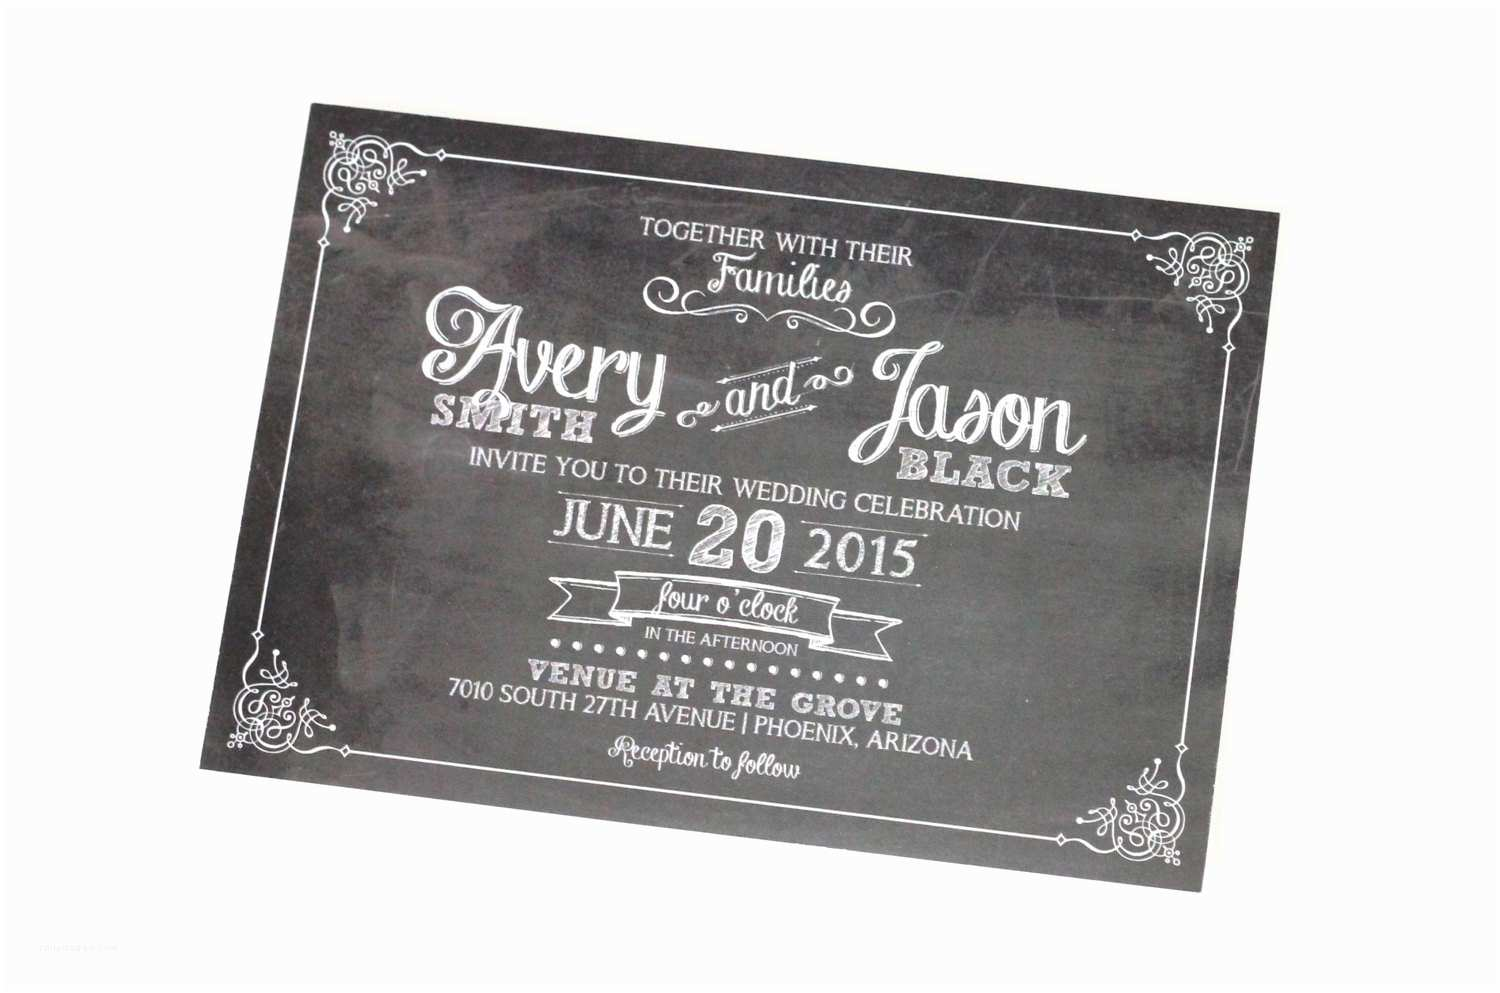 Avery Labels for Wedding Invitations Avery Chalkboard Wedding Invitation Sample Set Black and